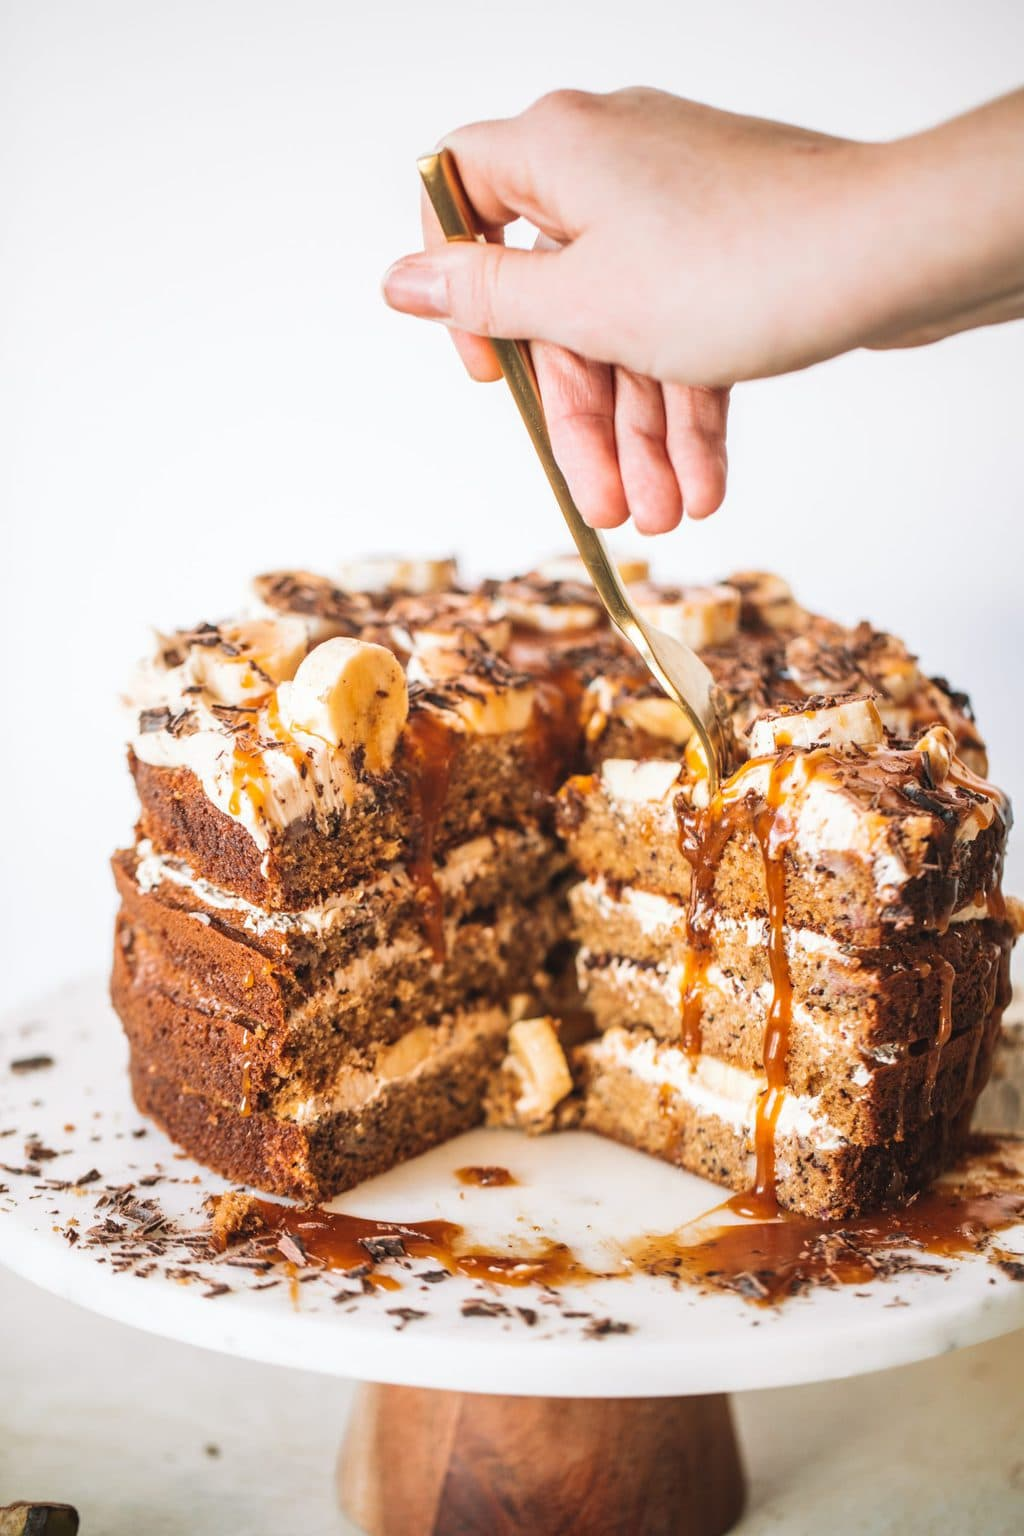 Woman putting fork into banana caramel cake with slices cut out.